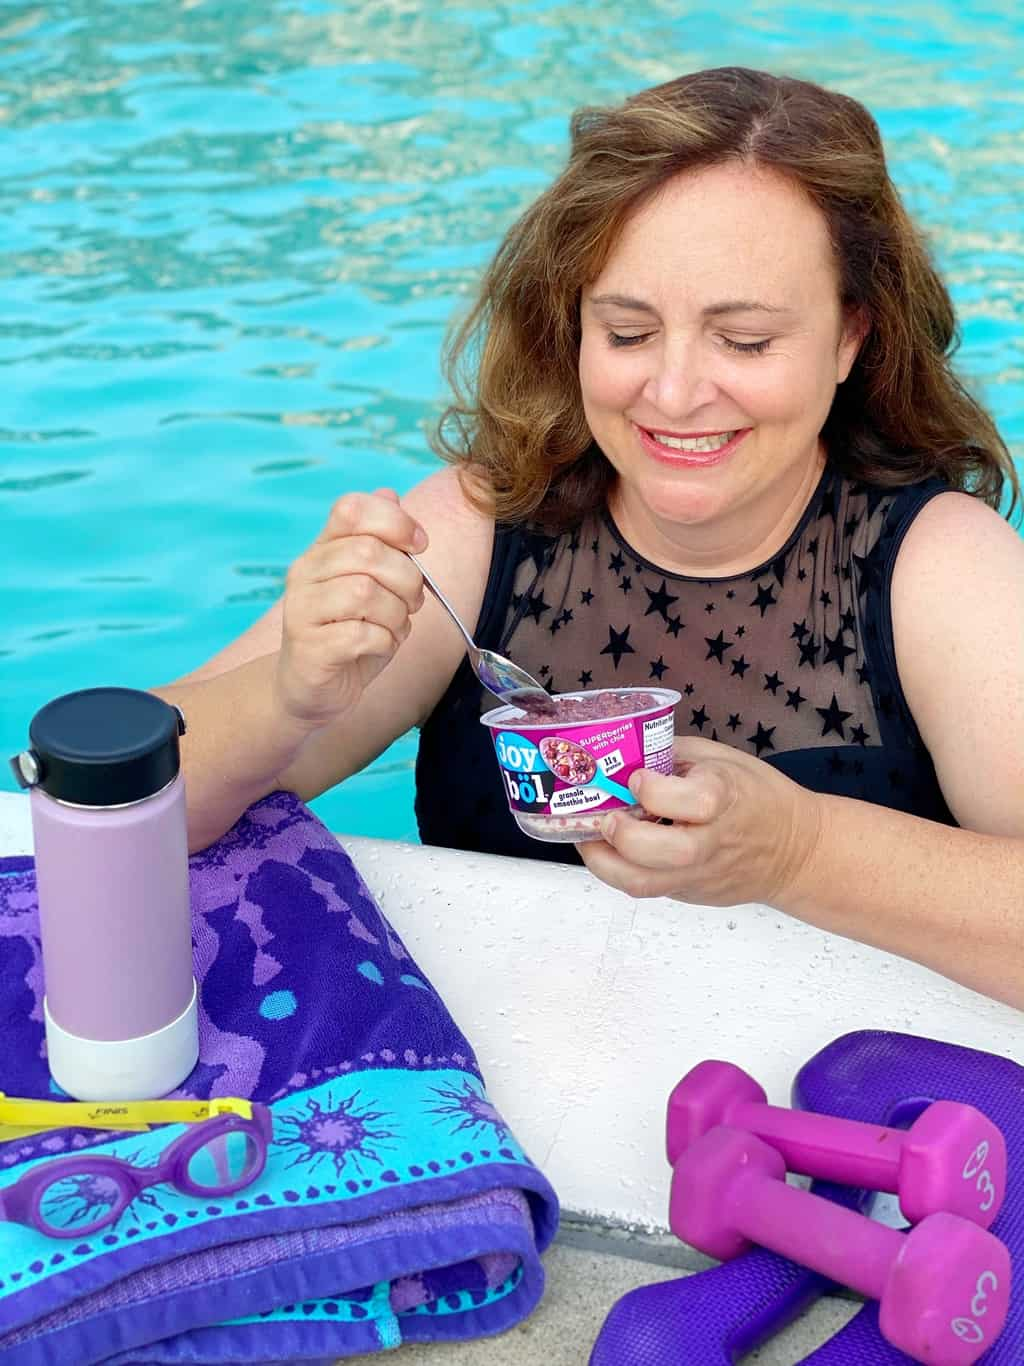 a woman eating joybol after working out in the pool